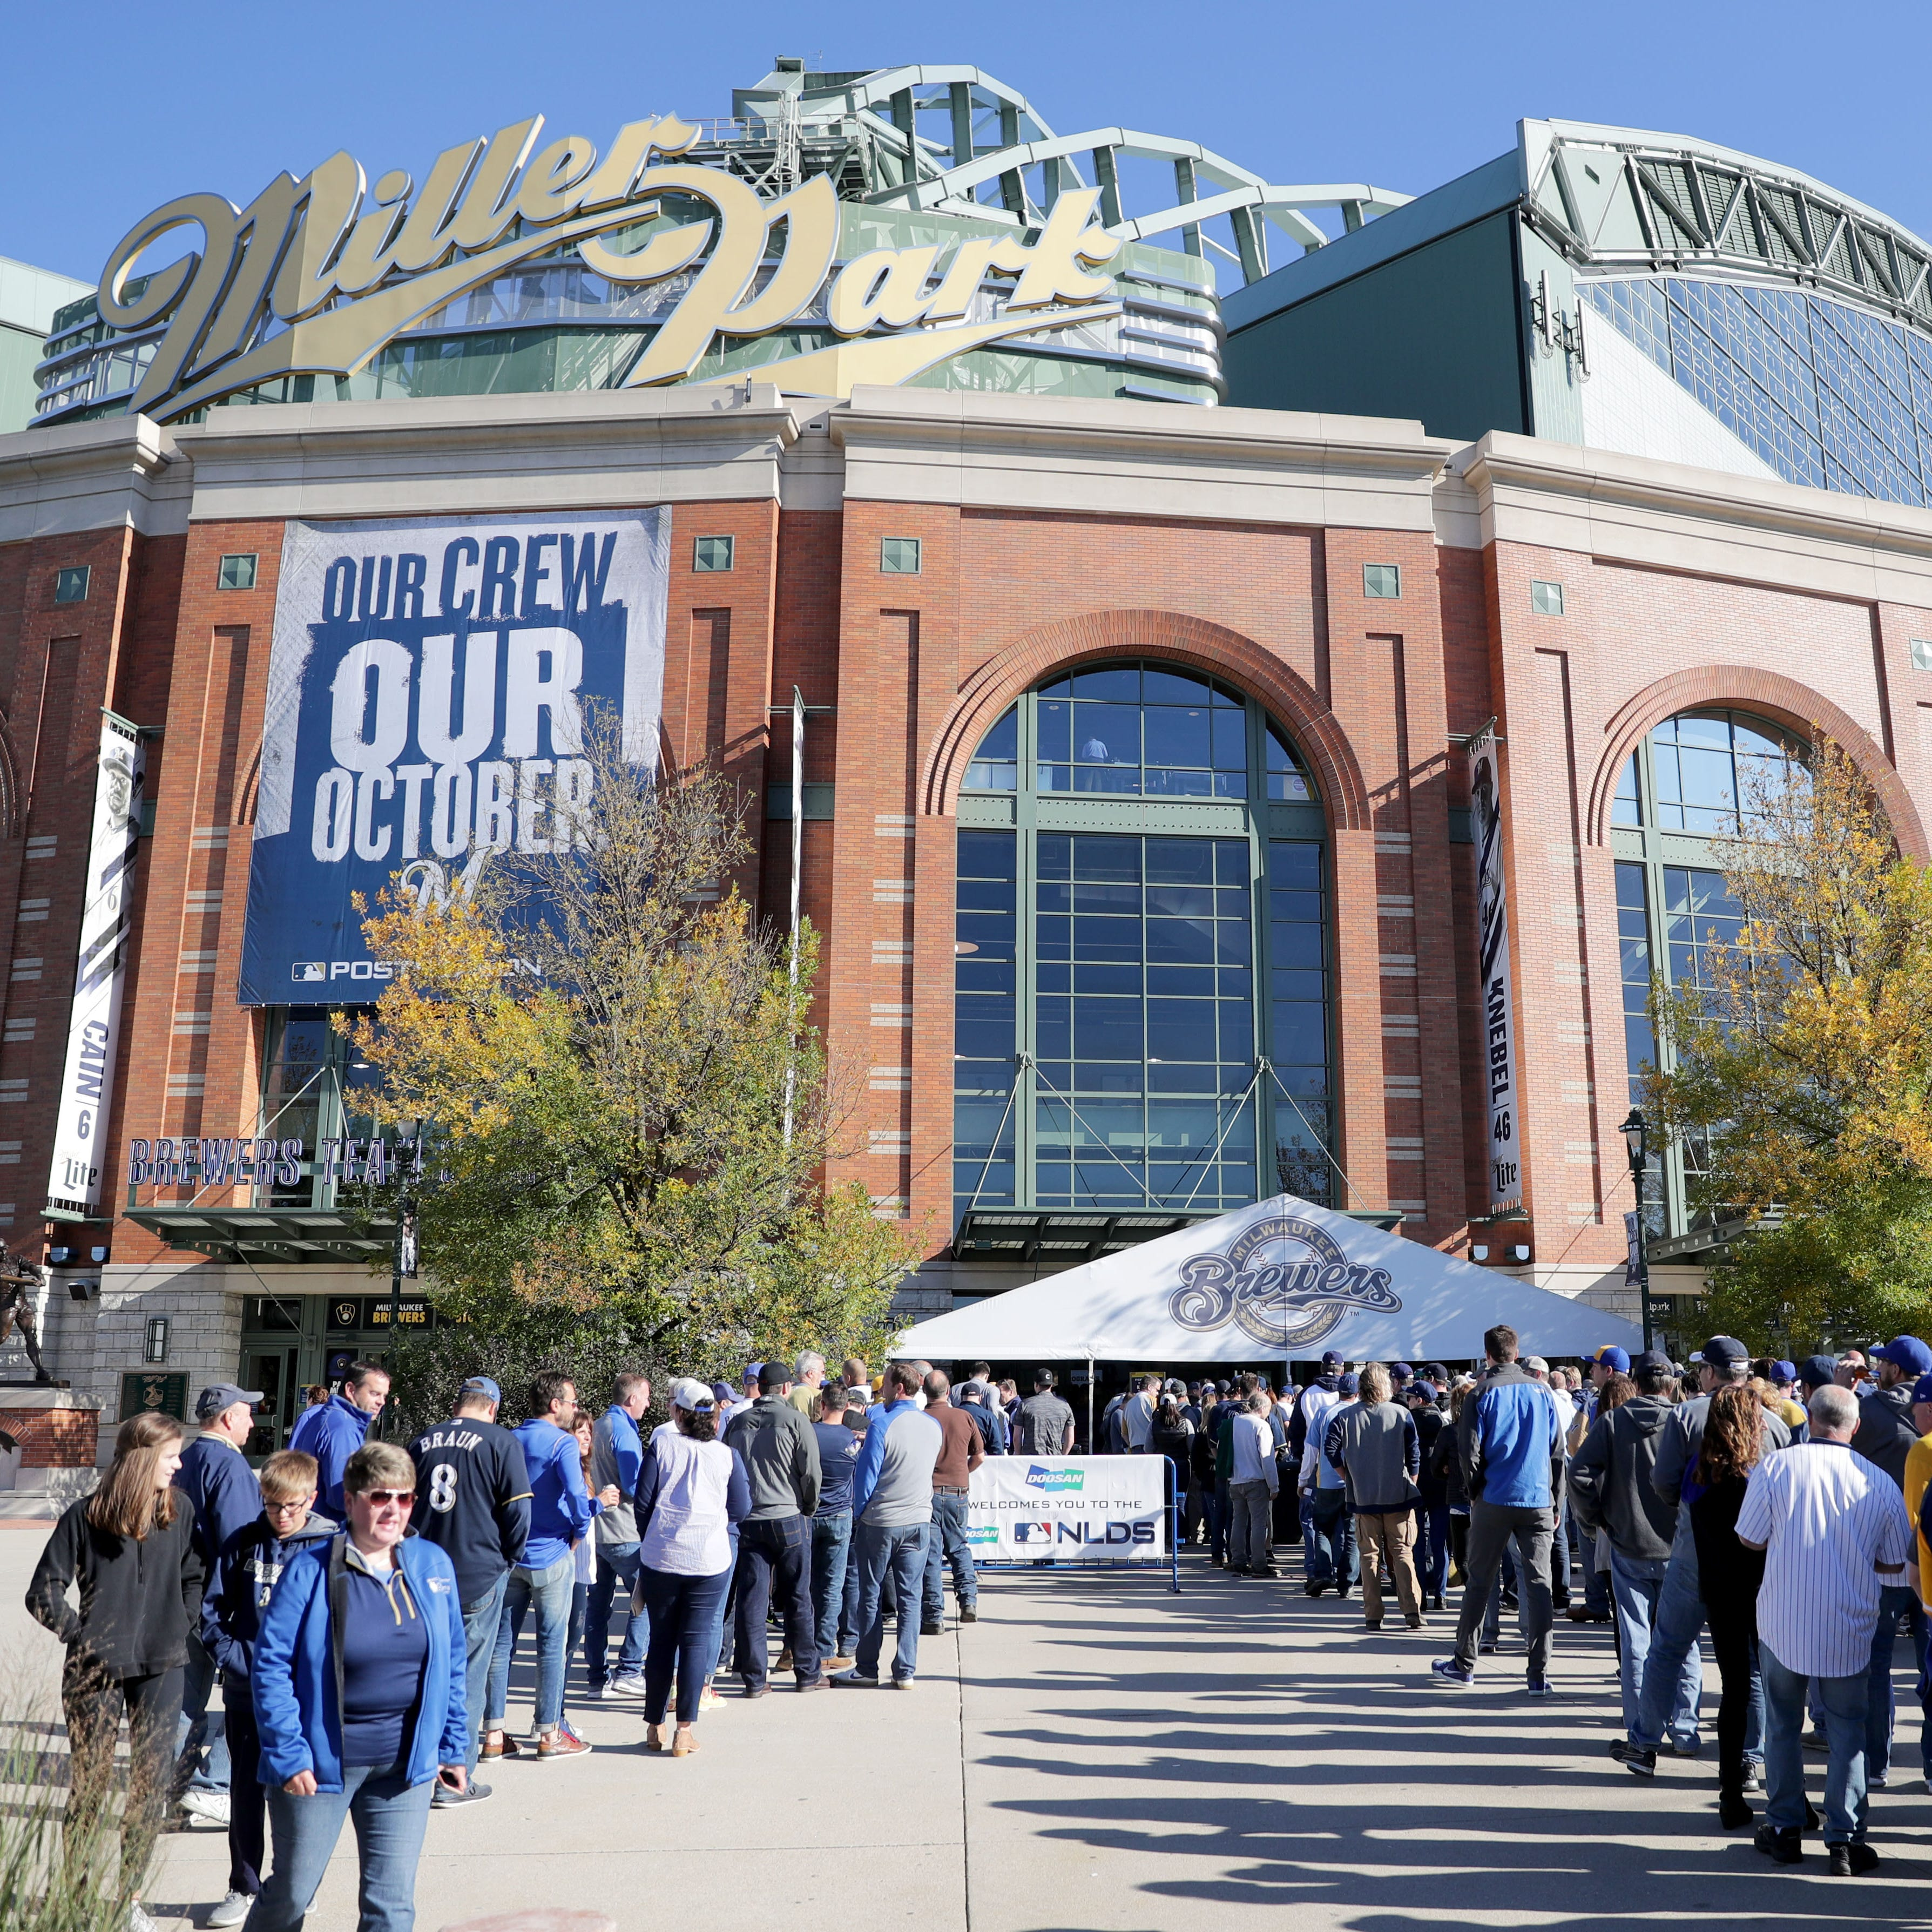 Ticket sales begin Thursday for World Series games at Miller Park, Brewers announce